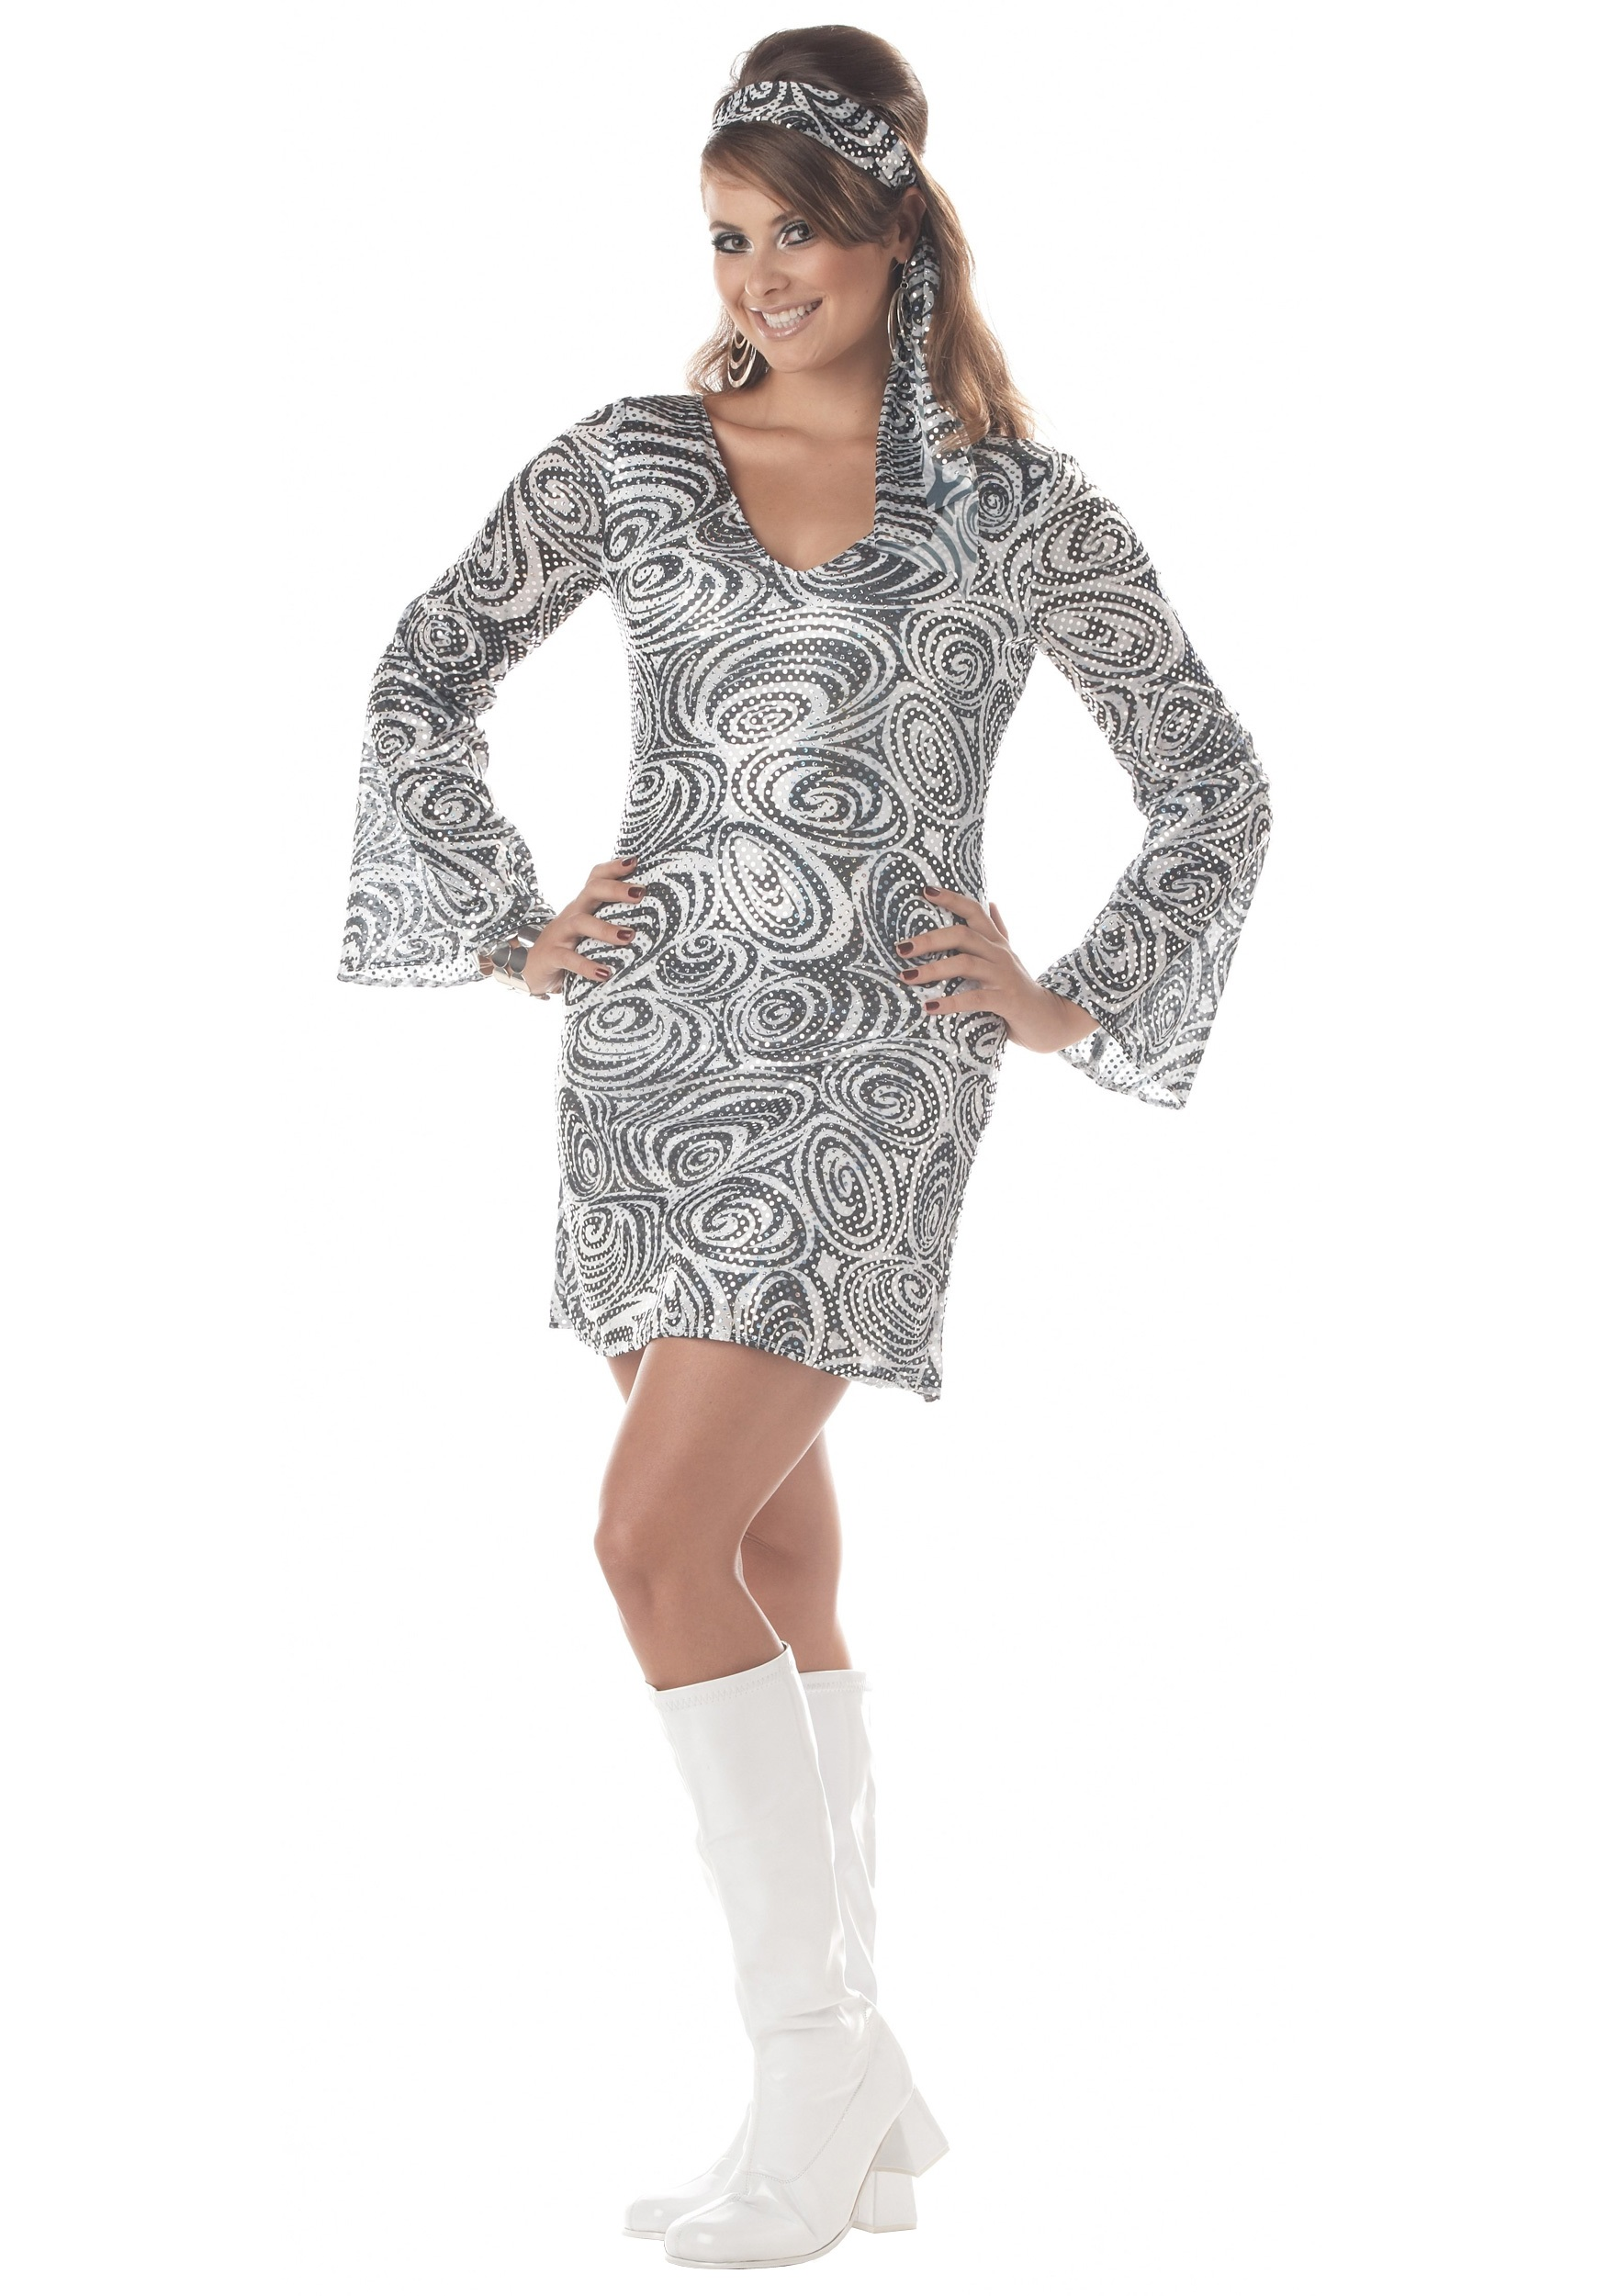 Plus Size Disco Diva Dress Costume